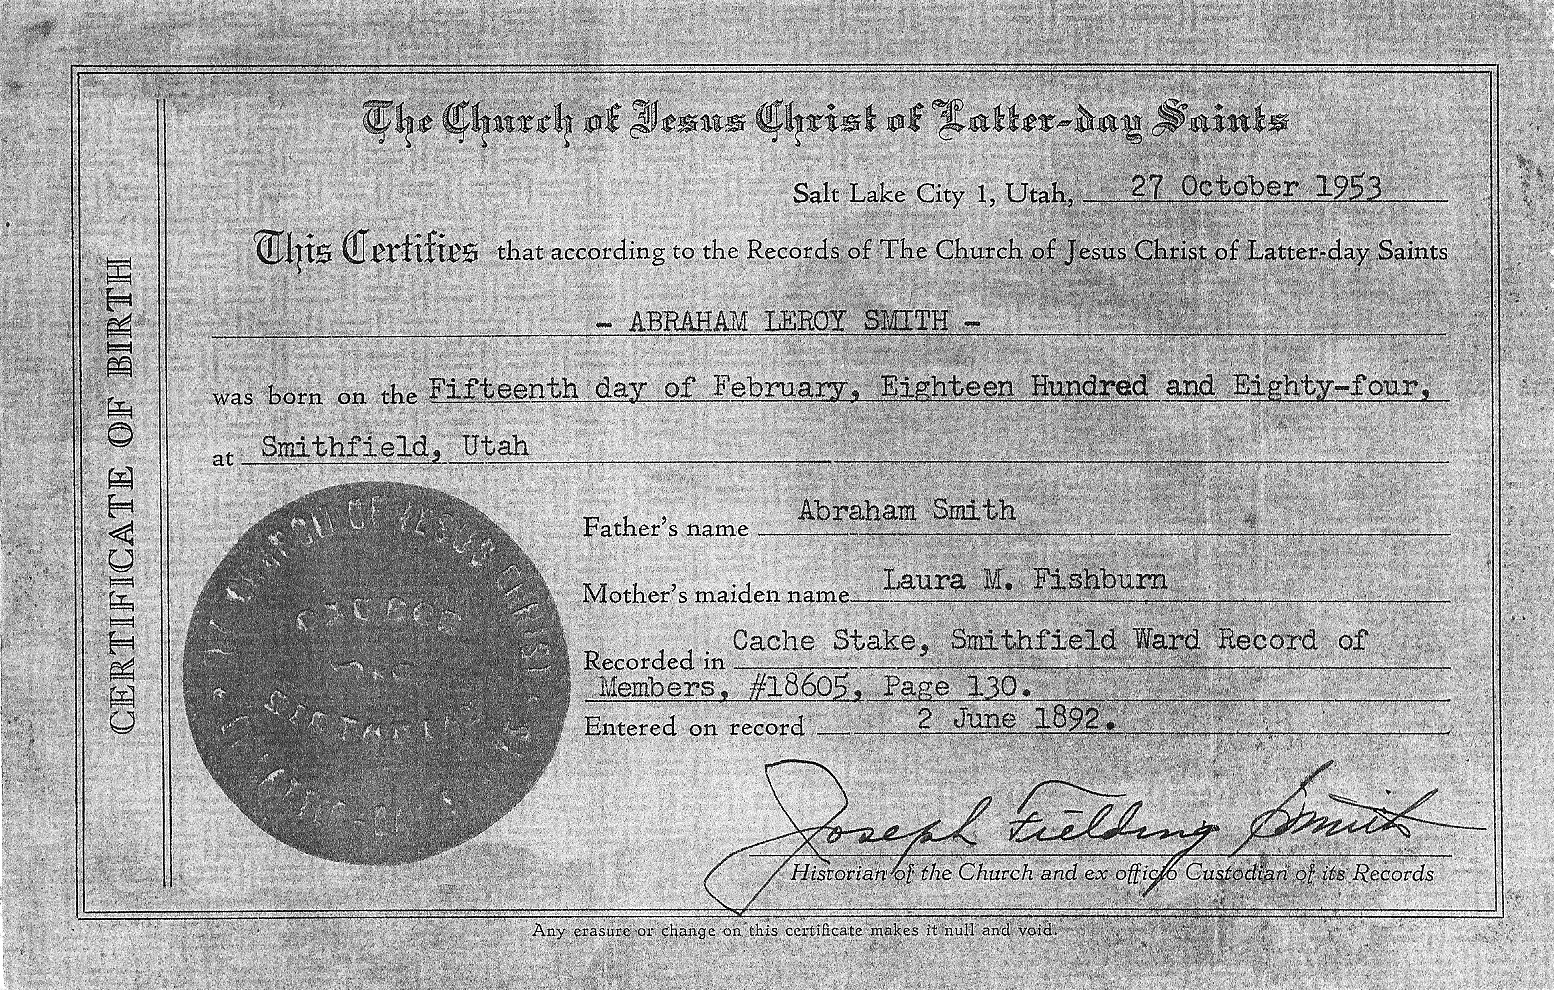 Abraham leroy smith 1884 1969 find a grave memorial abraham leroy birth certificate xflitez Image collections